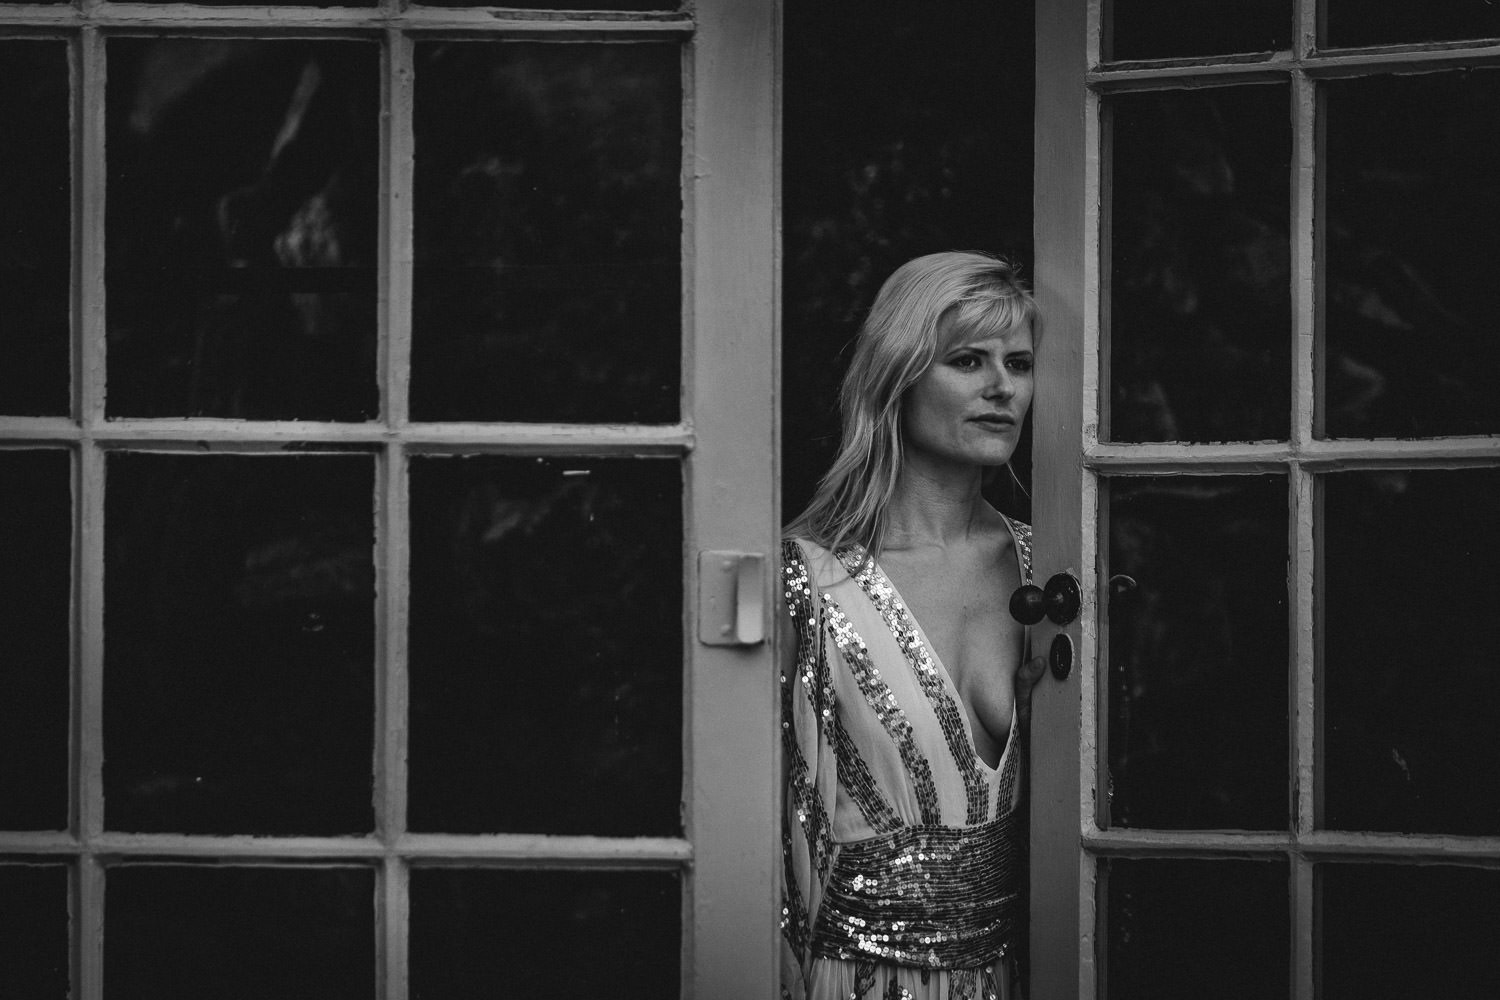 Black and white image of a woman, leaning against an open door, as she looks into the distance.